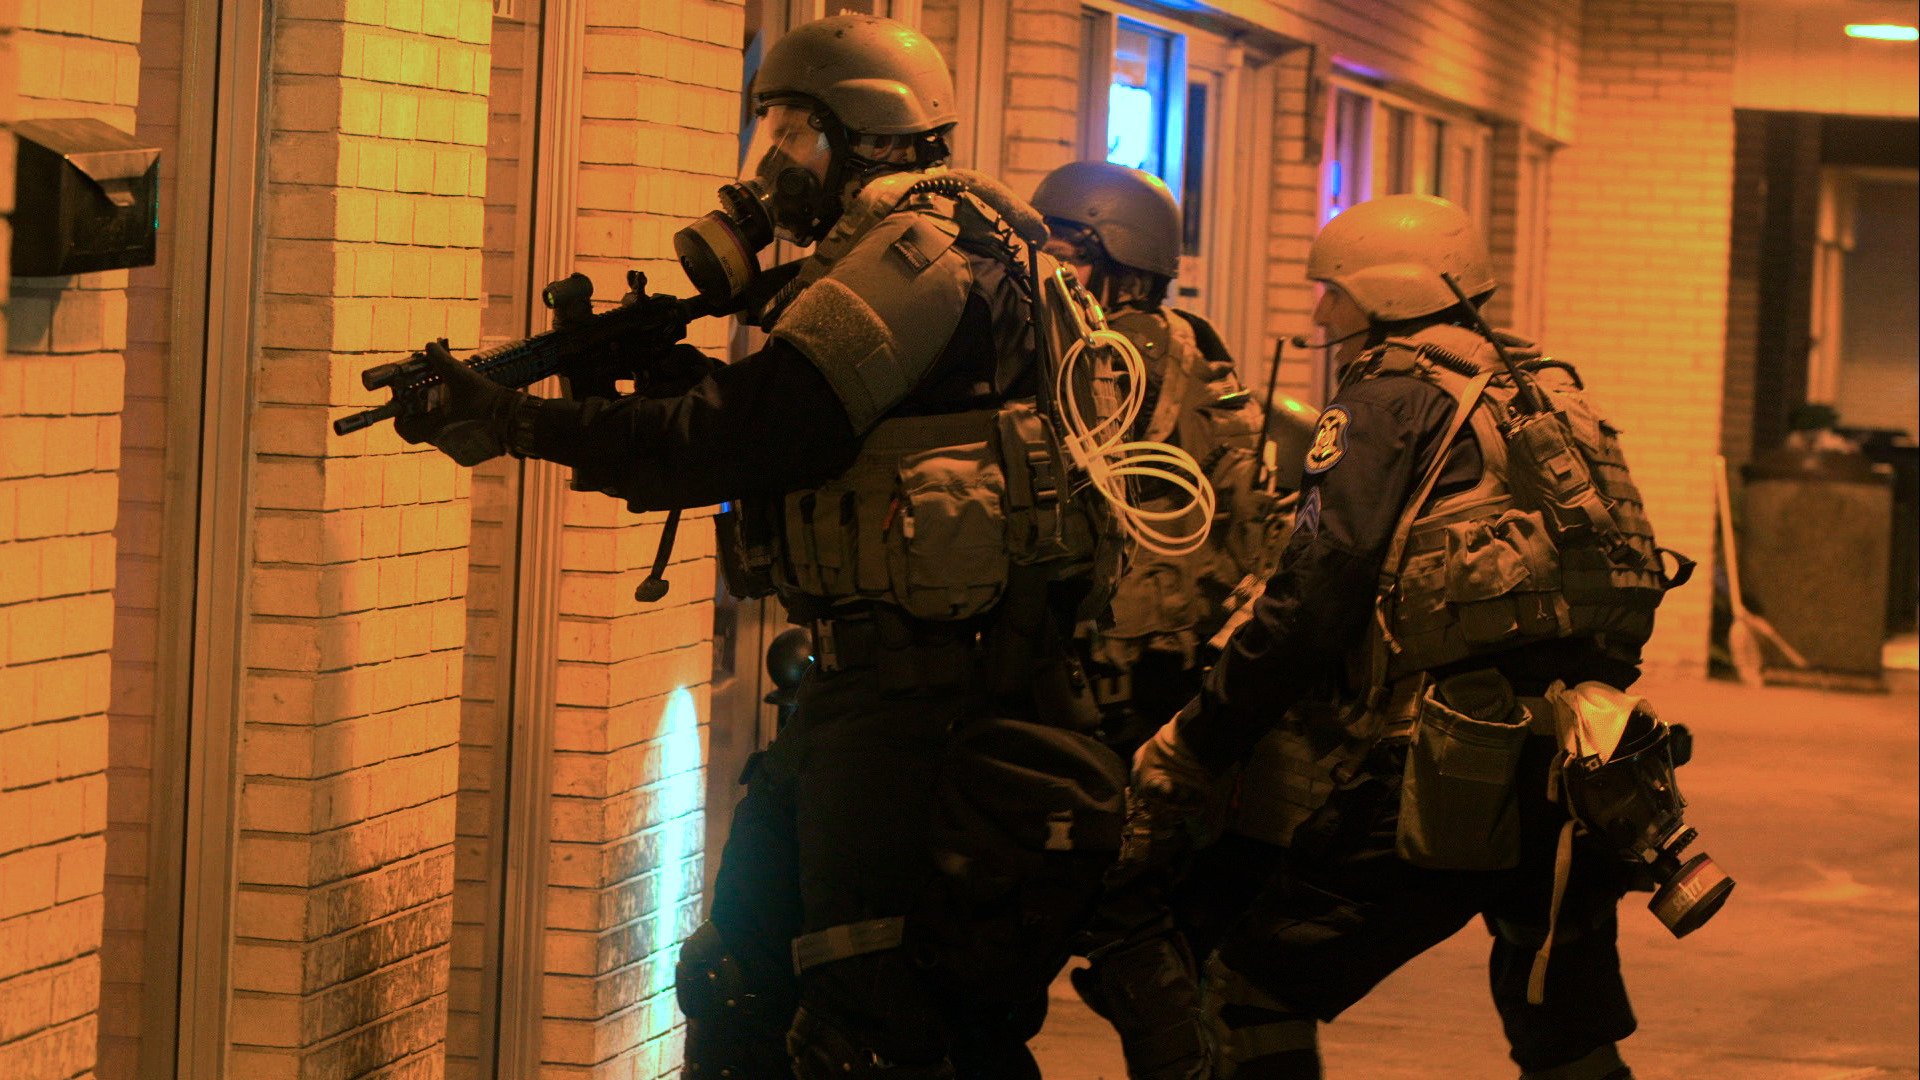 A new documentary looks at the billions of dollars in military equipment local police use